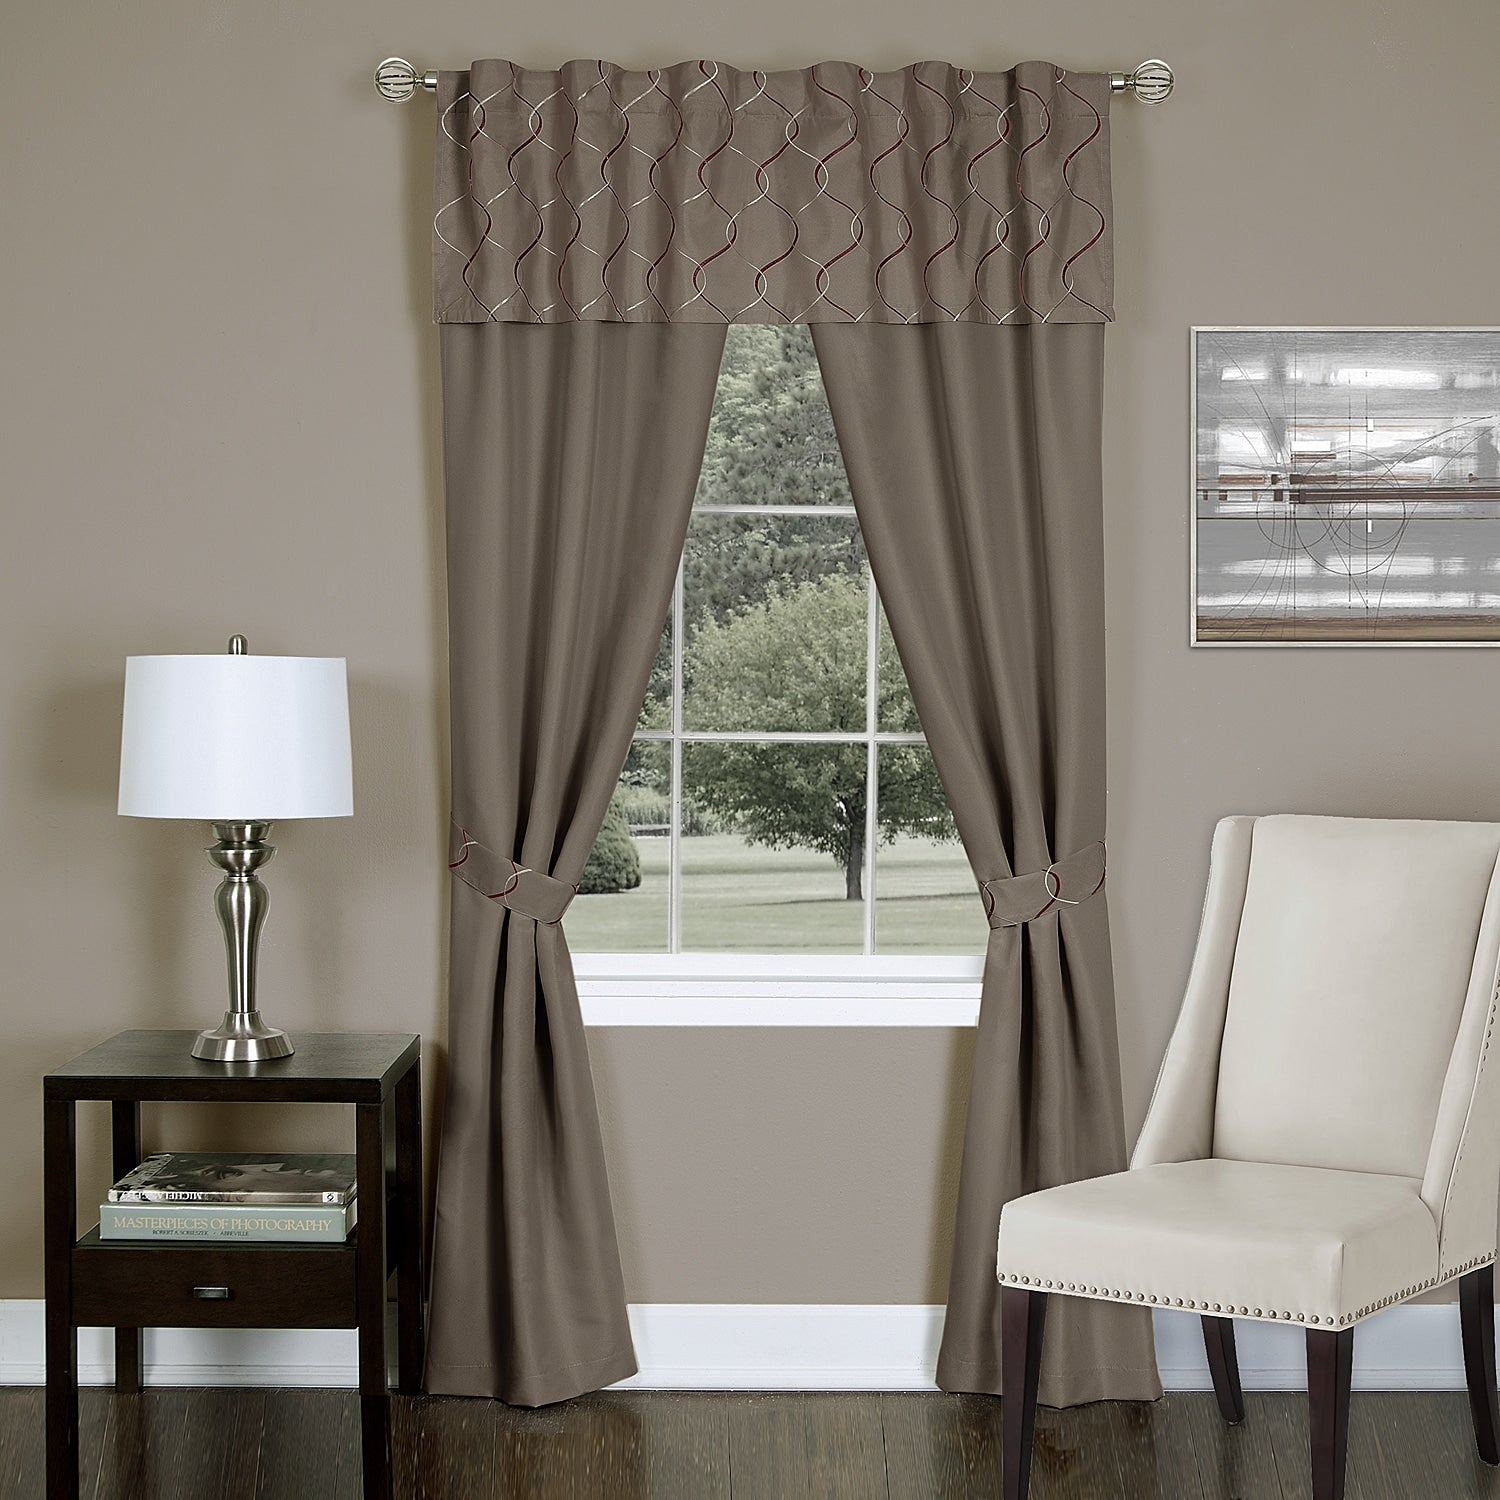 Solid Window Curtain Set Metallic Two Toned Embroidered Wave Pattern Valance Tiebacks Drape Modern Unique Stylish